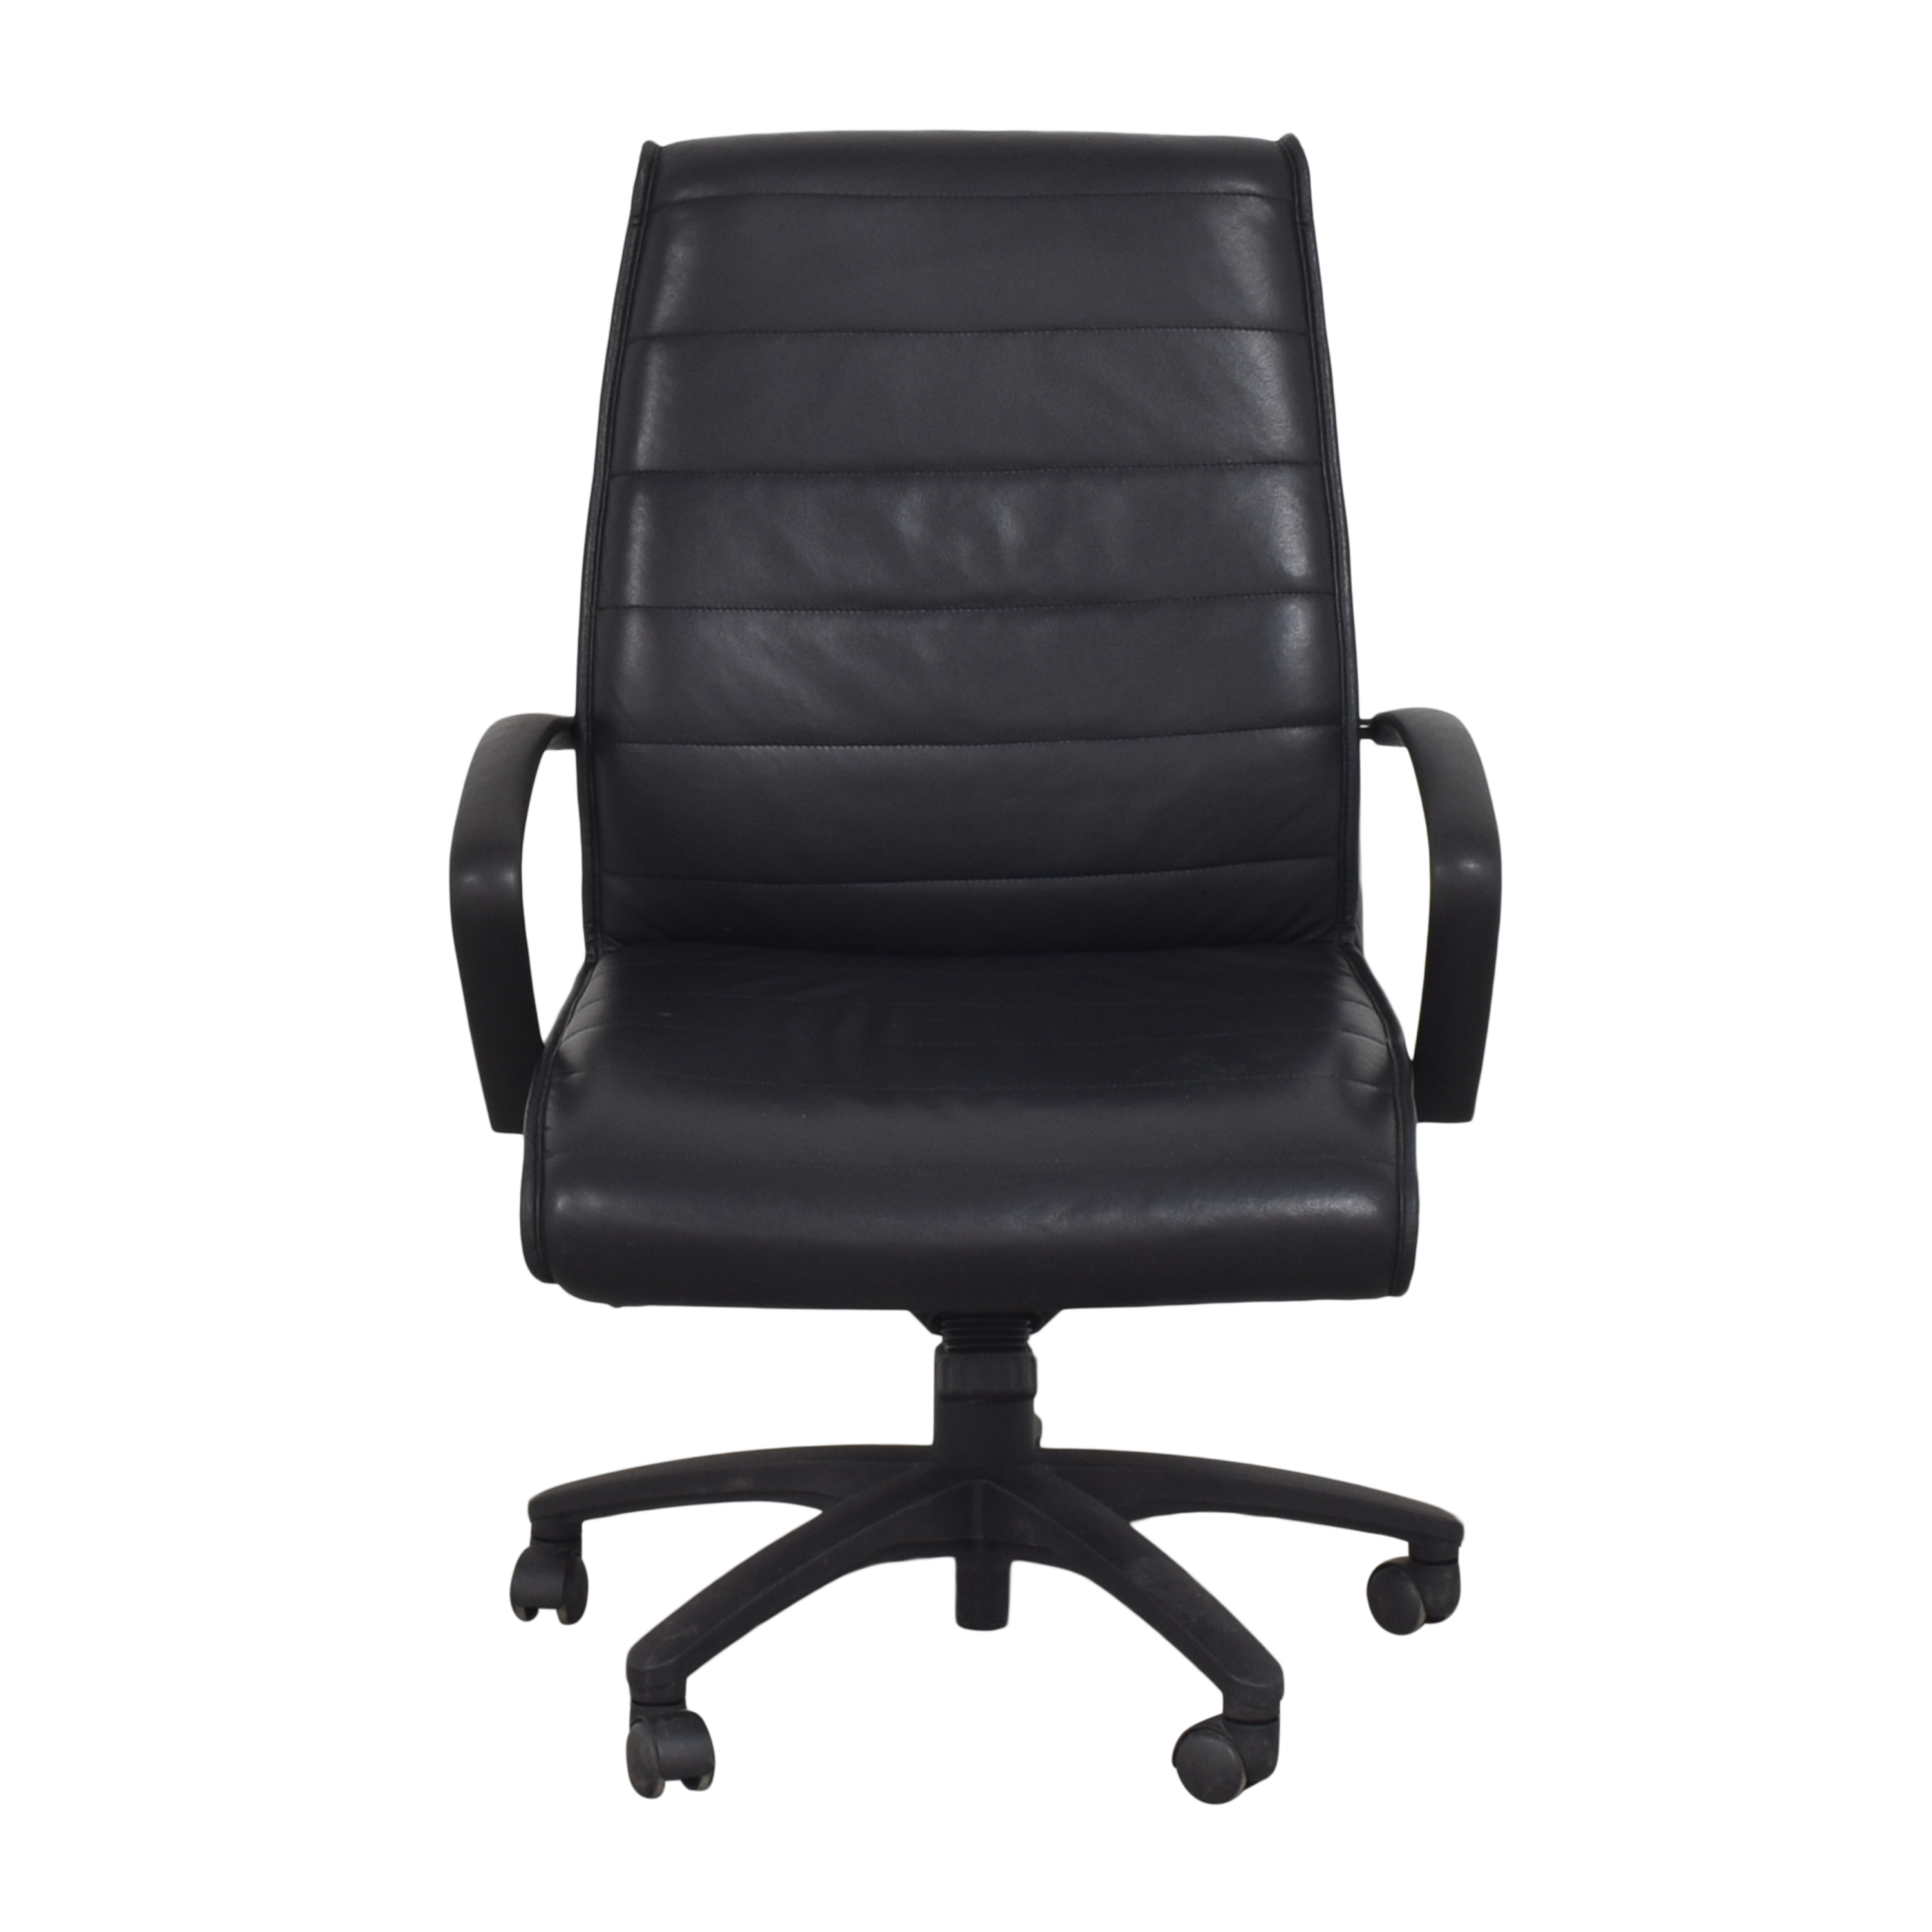 Dauphin Dauphin Adjustable Office Chair dimensions